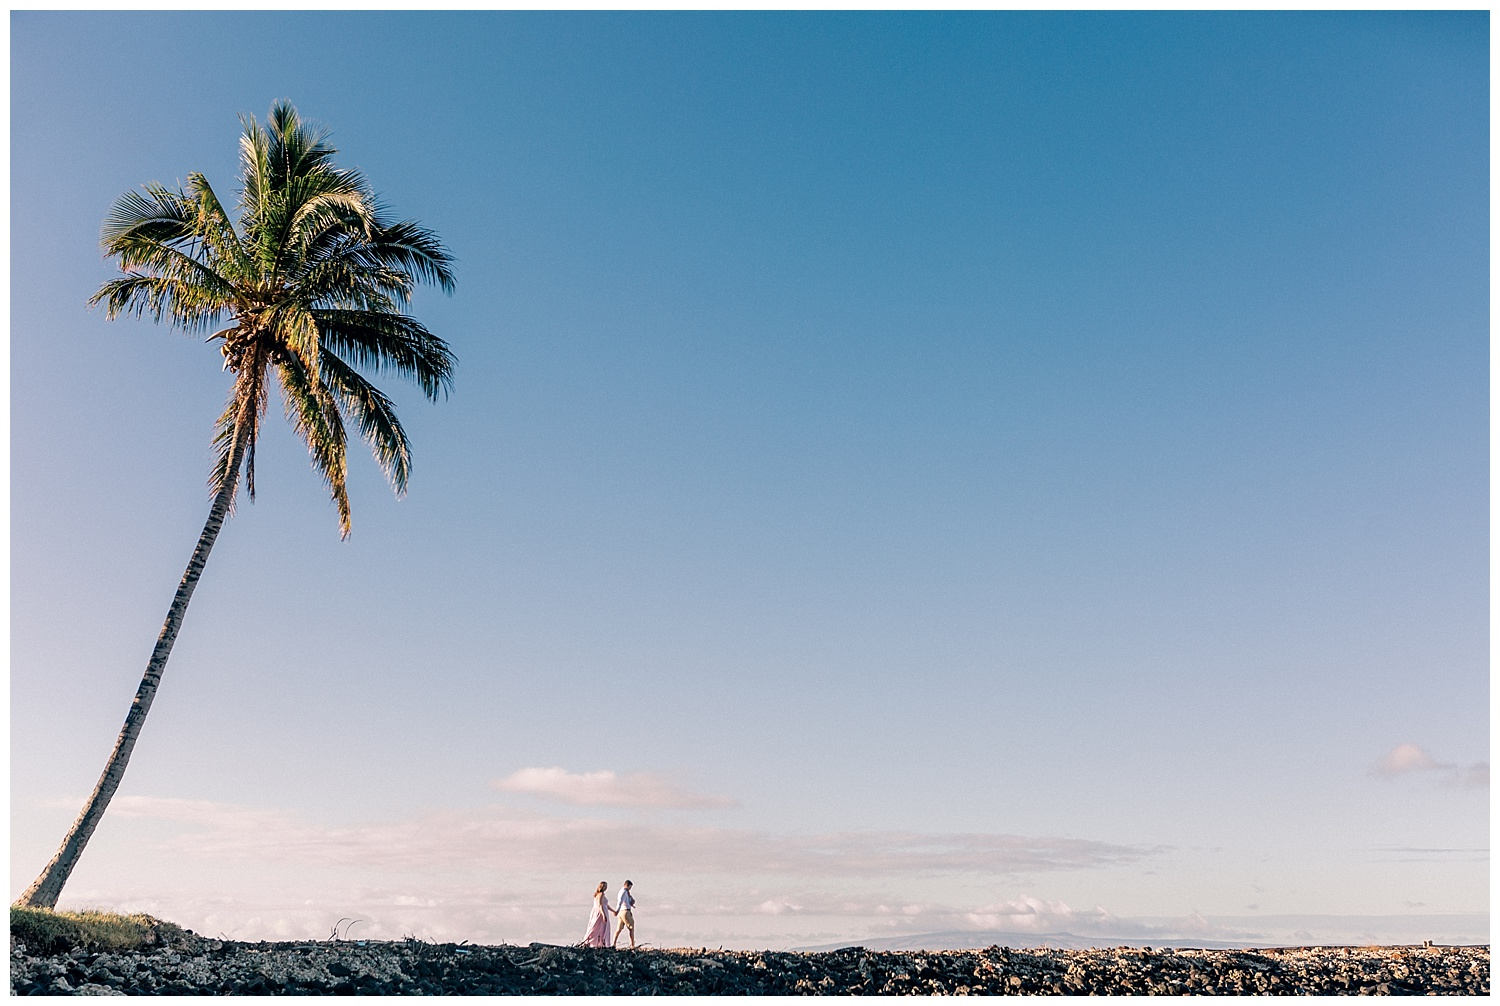 Family walking at Olowalu Landing, Maui with palm tree